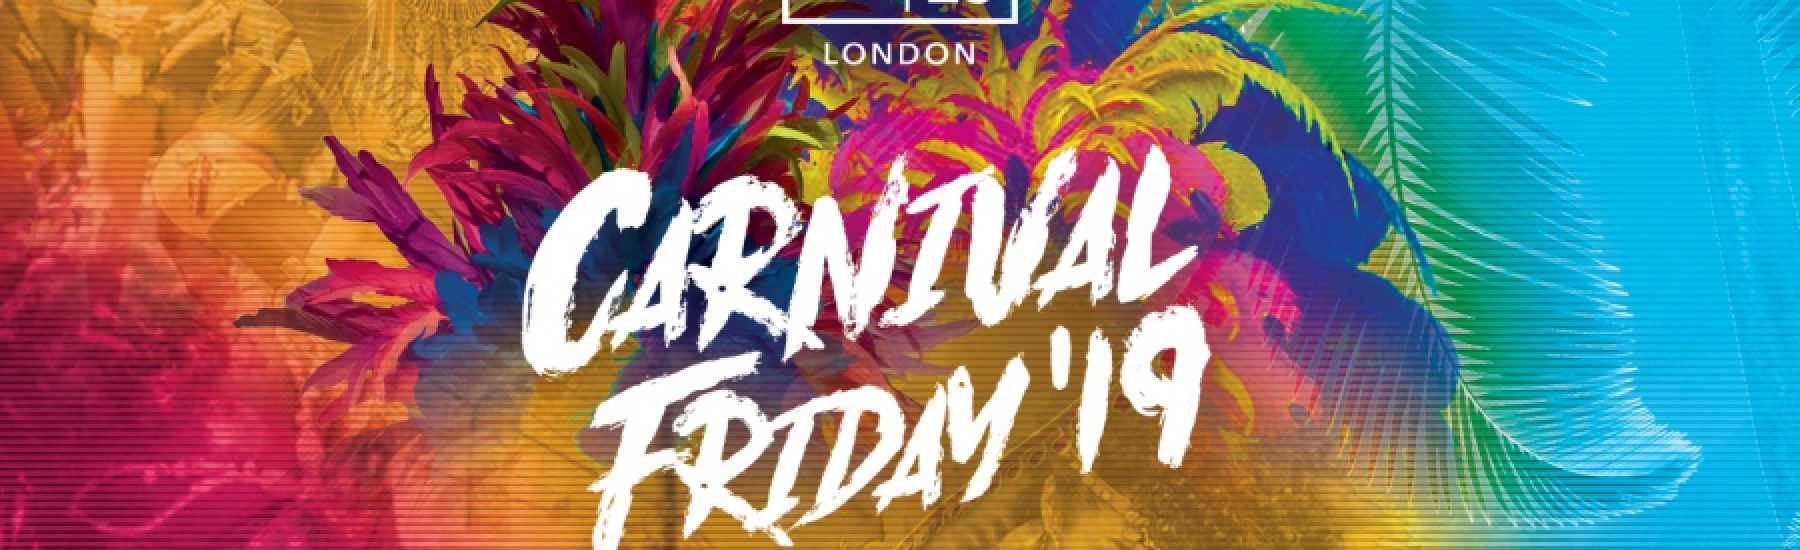 Carnival Friday : Notting Hill Carnival 2019 Starter